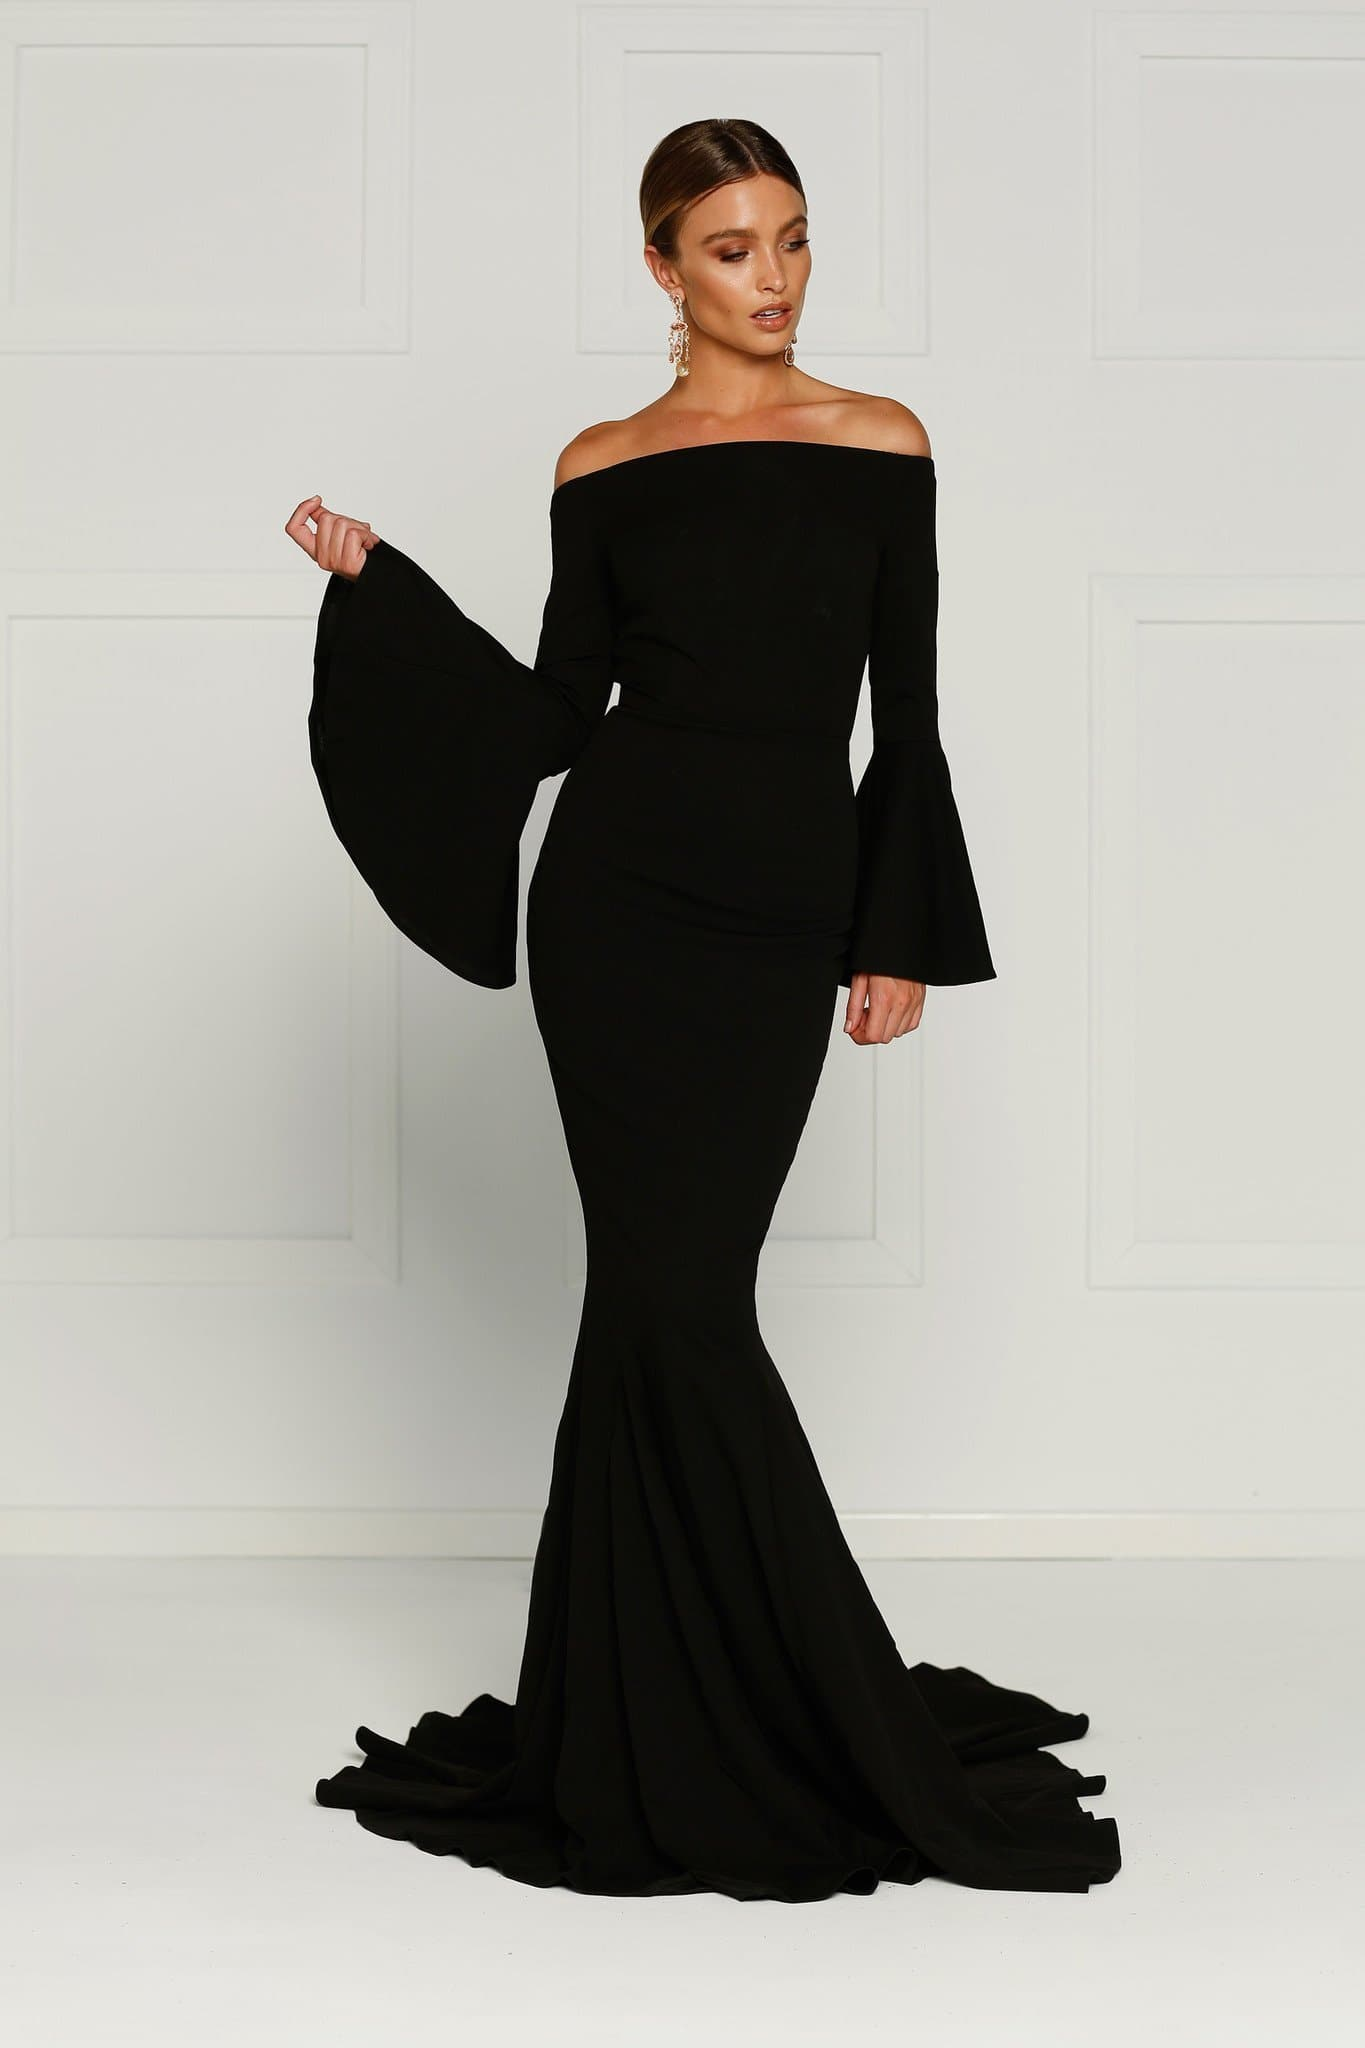 d2db6850850 Amore - Black Off Shoulder Gown with Long Flare Sleeves – A&N Luxe Label